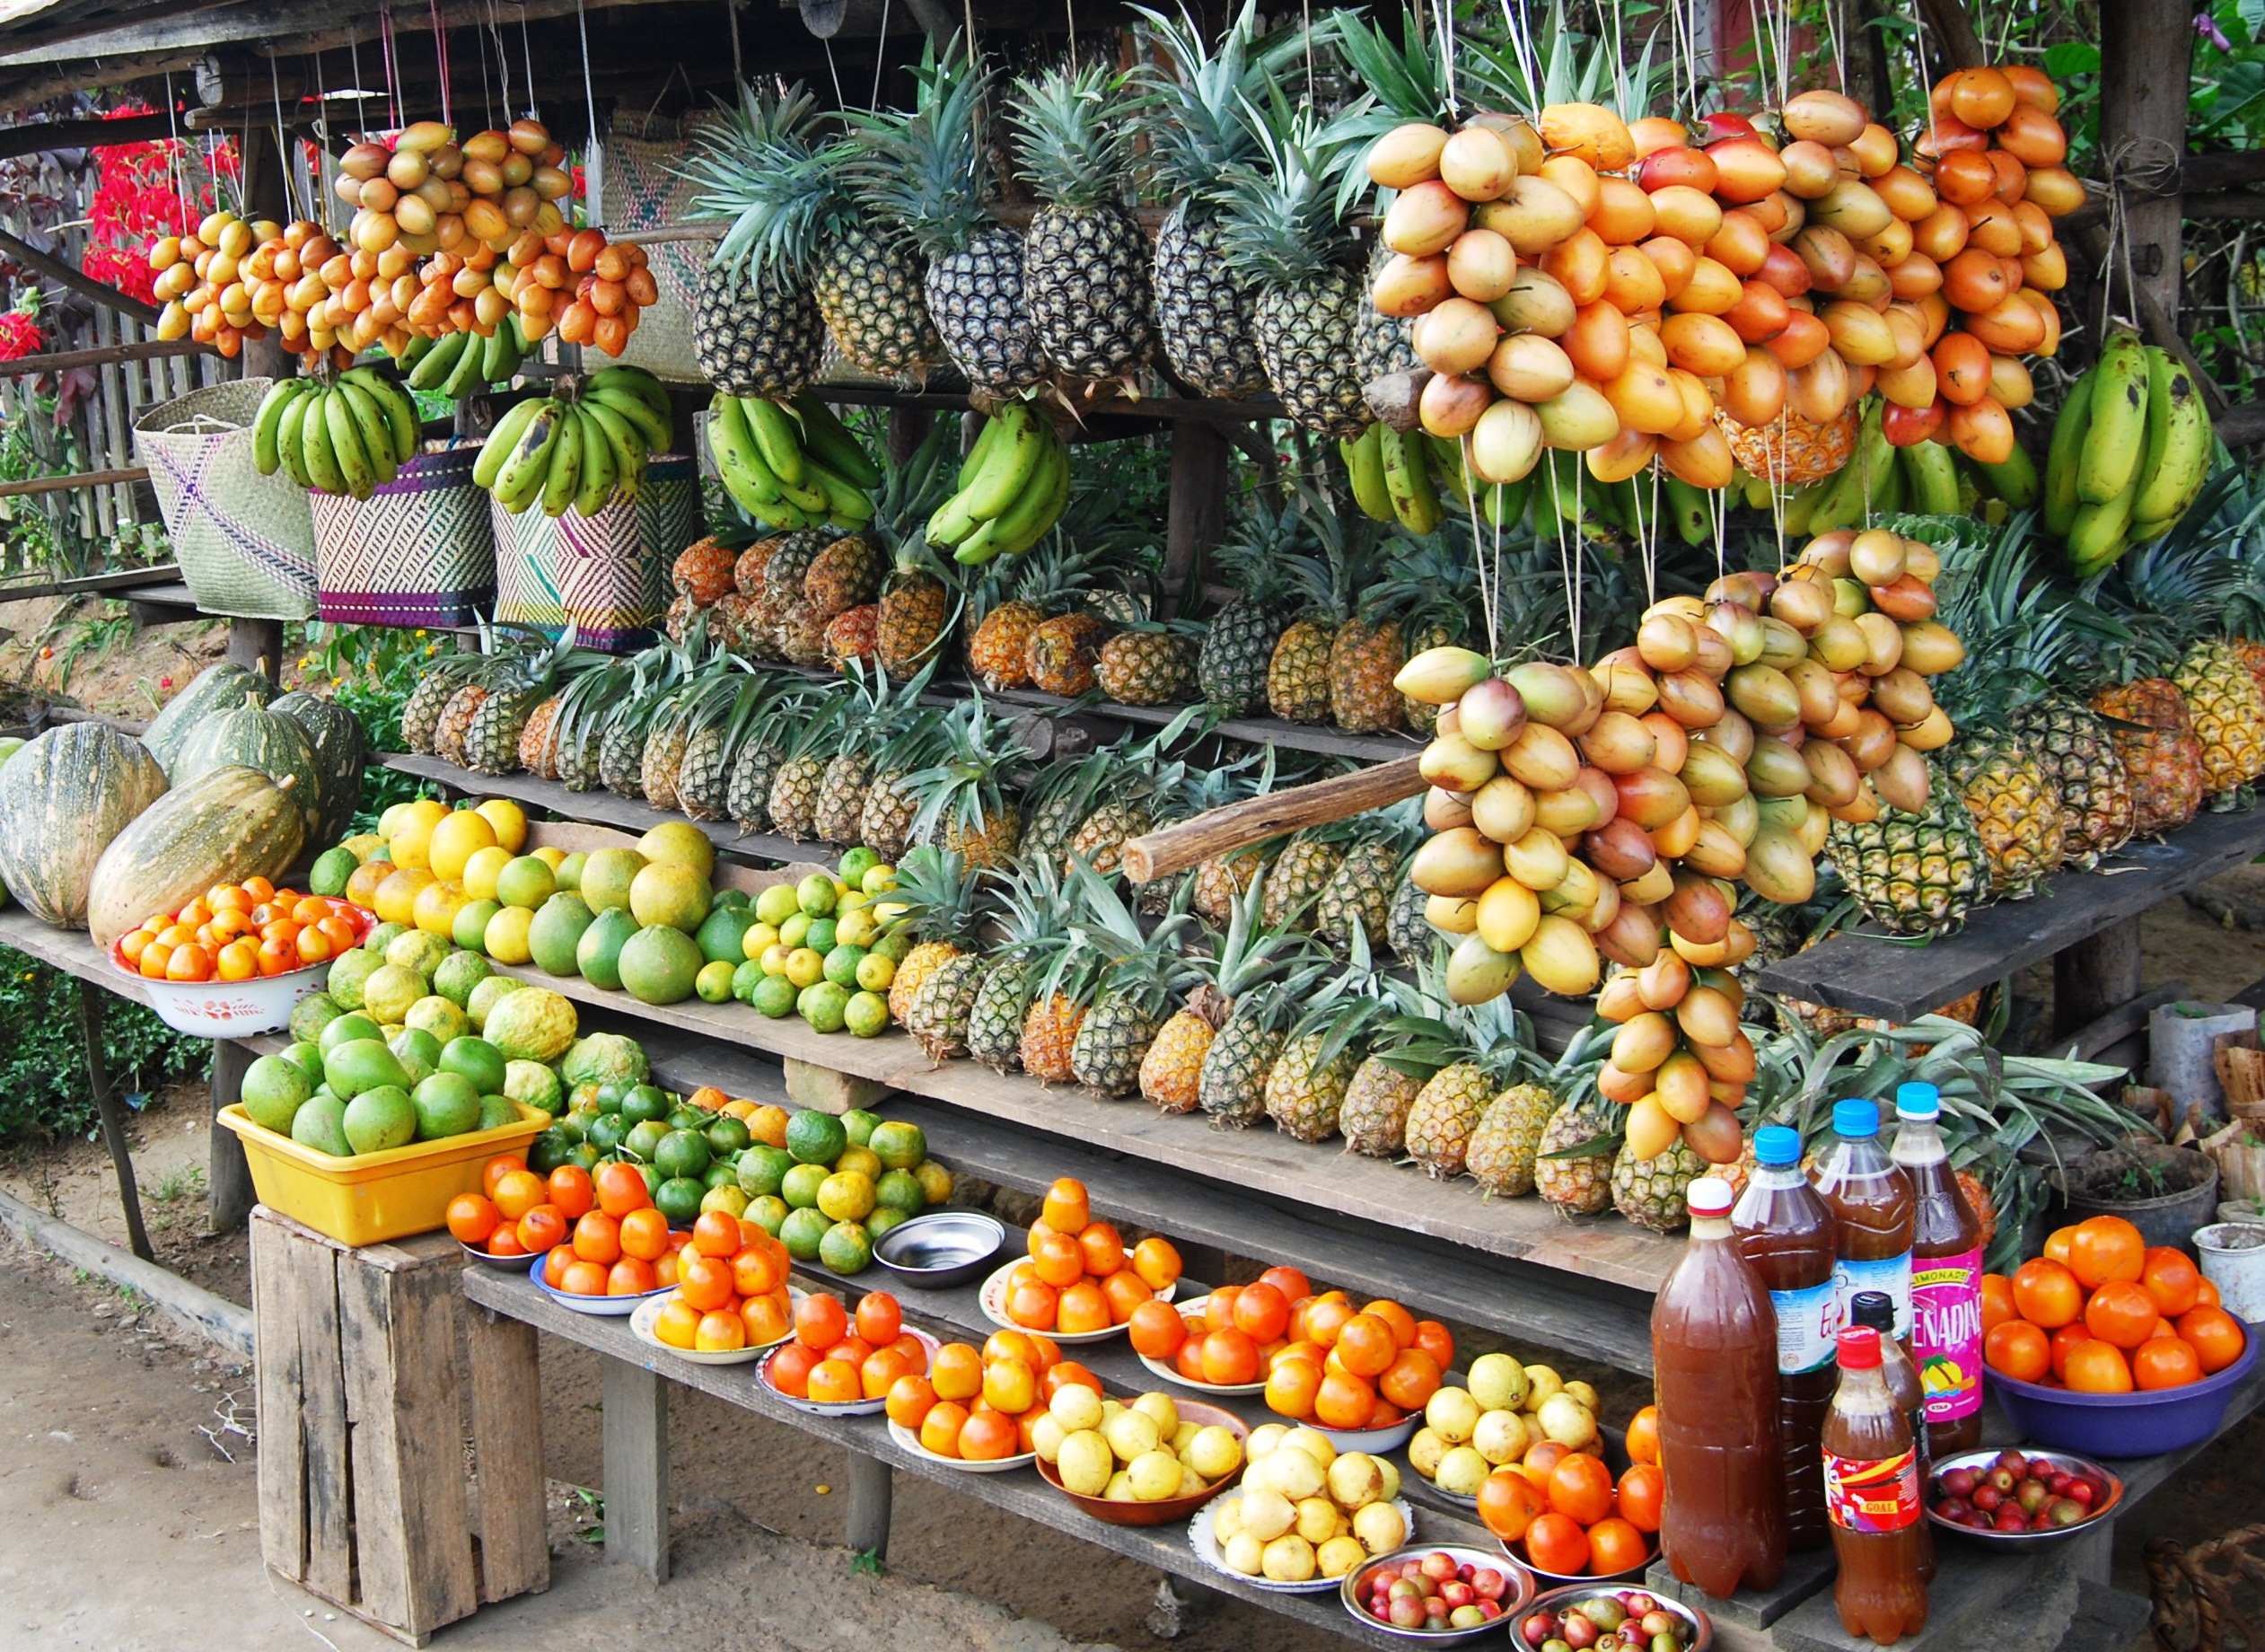 A whirlwind tour of the best shopping market in Antananarivo - Madagascar! 35